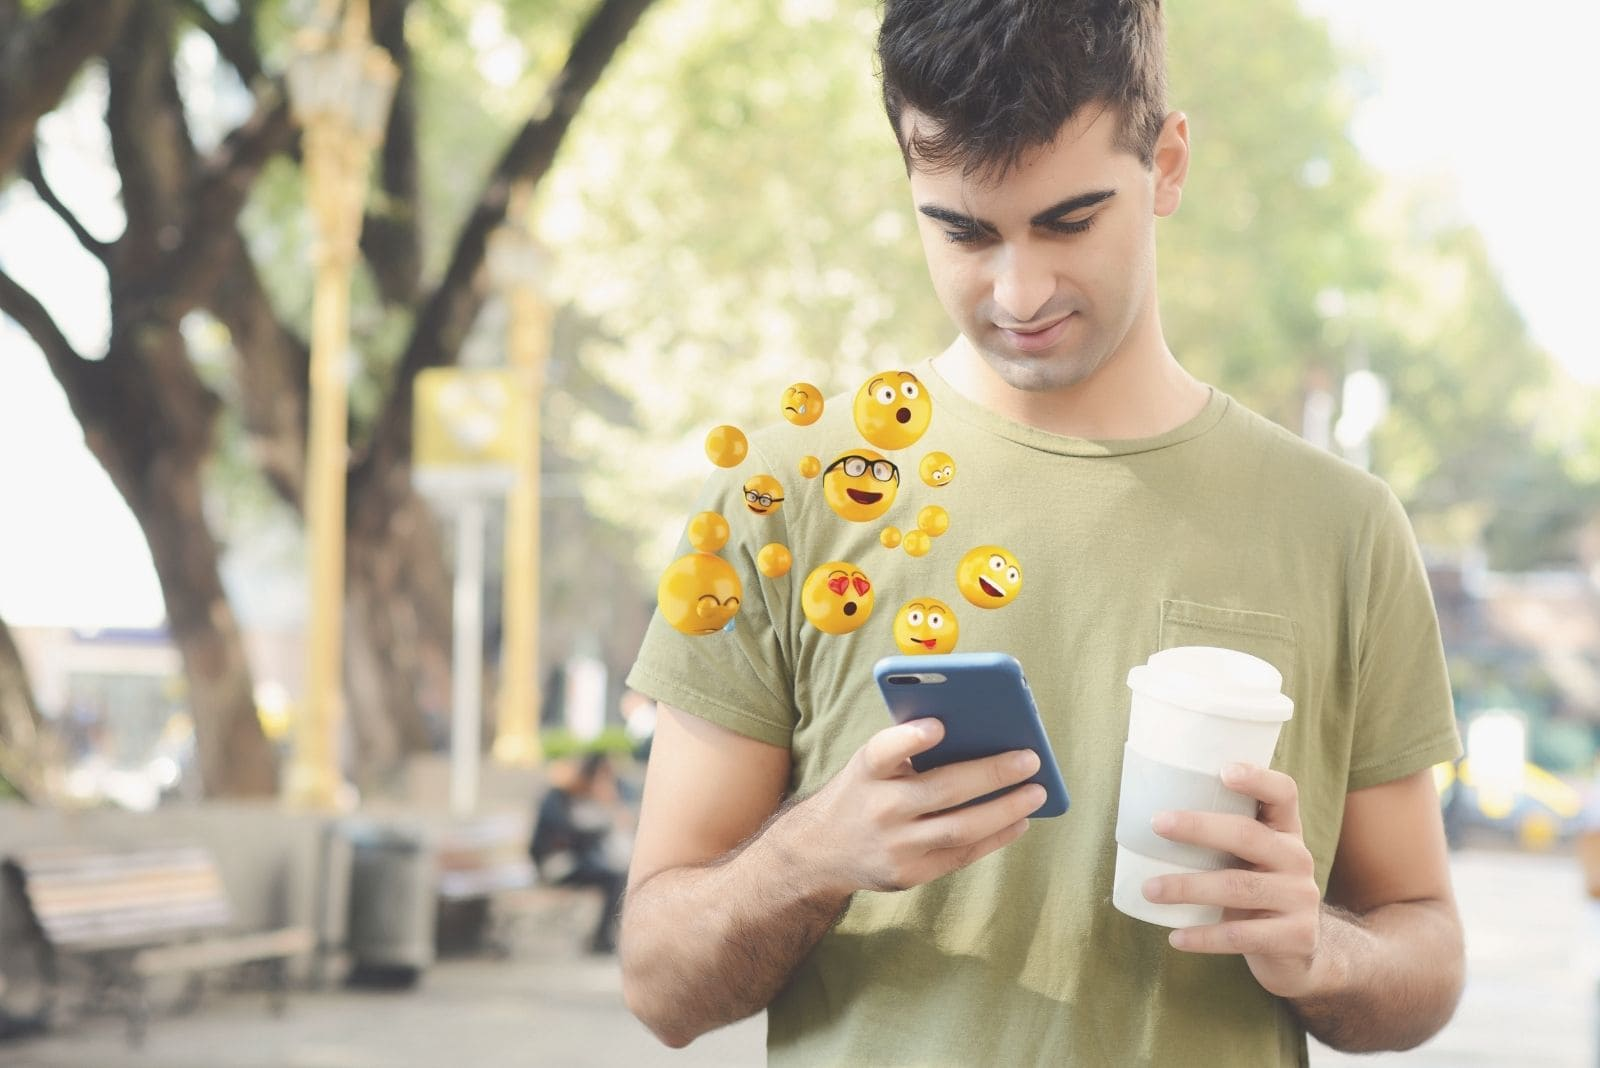 man using smartphone sending emojis and holding cup of coffee while walking in the park